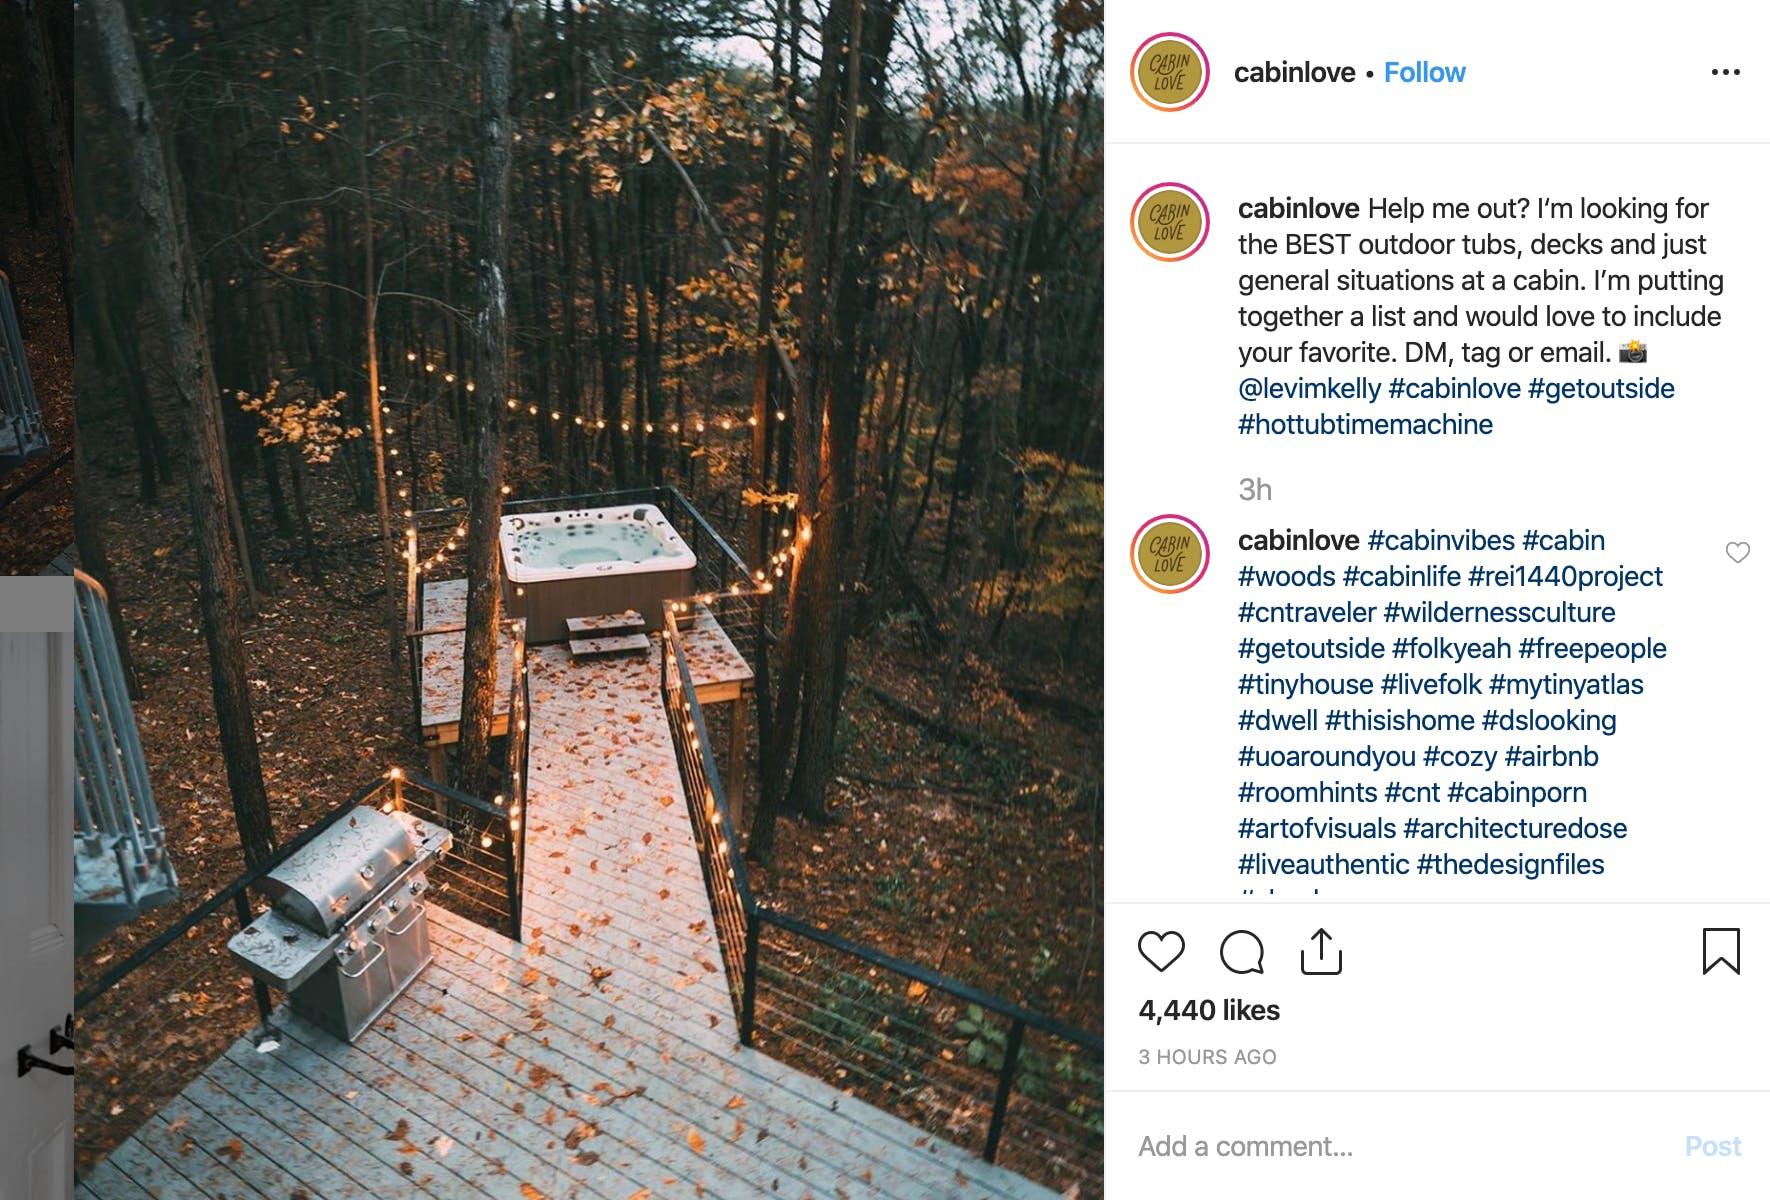 example of hashtags in instagram comment